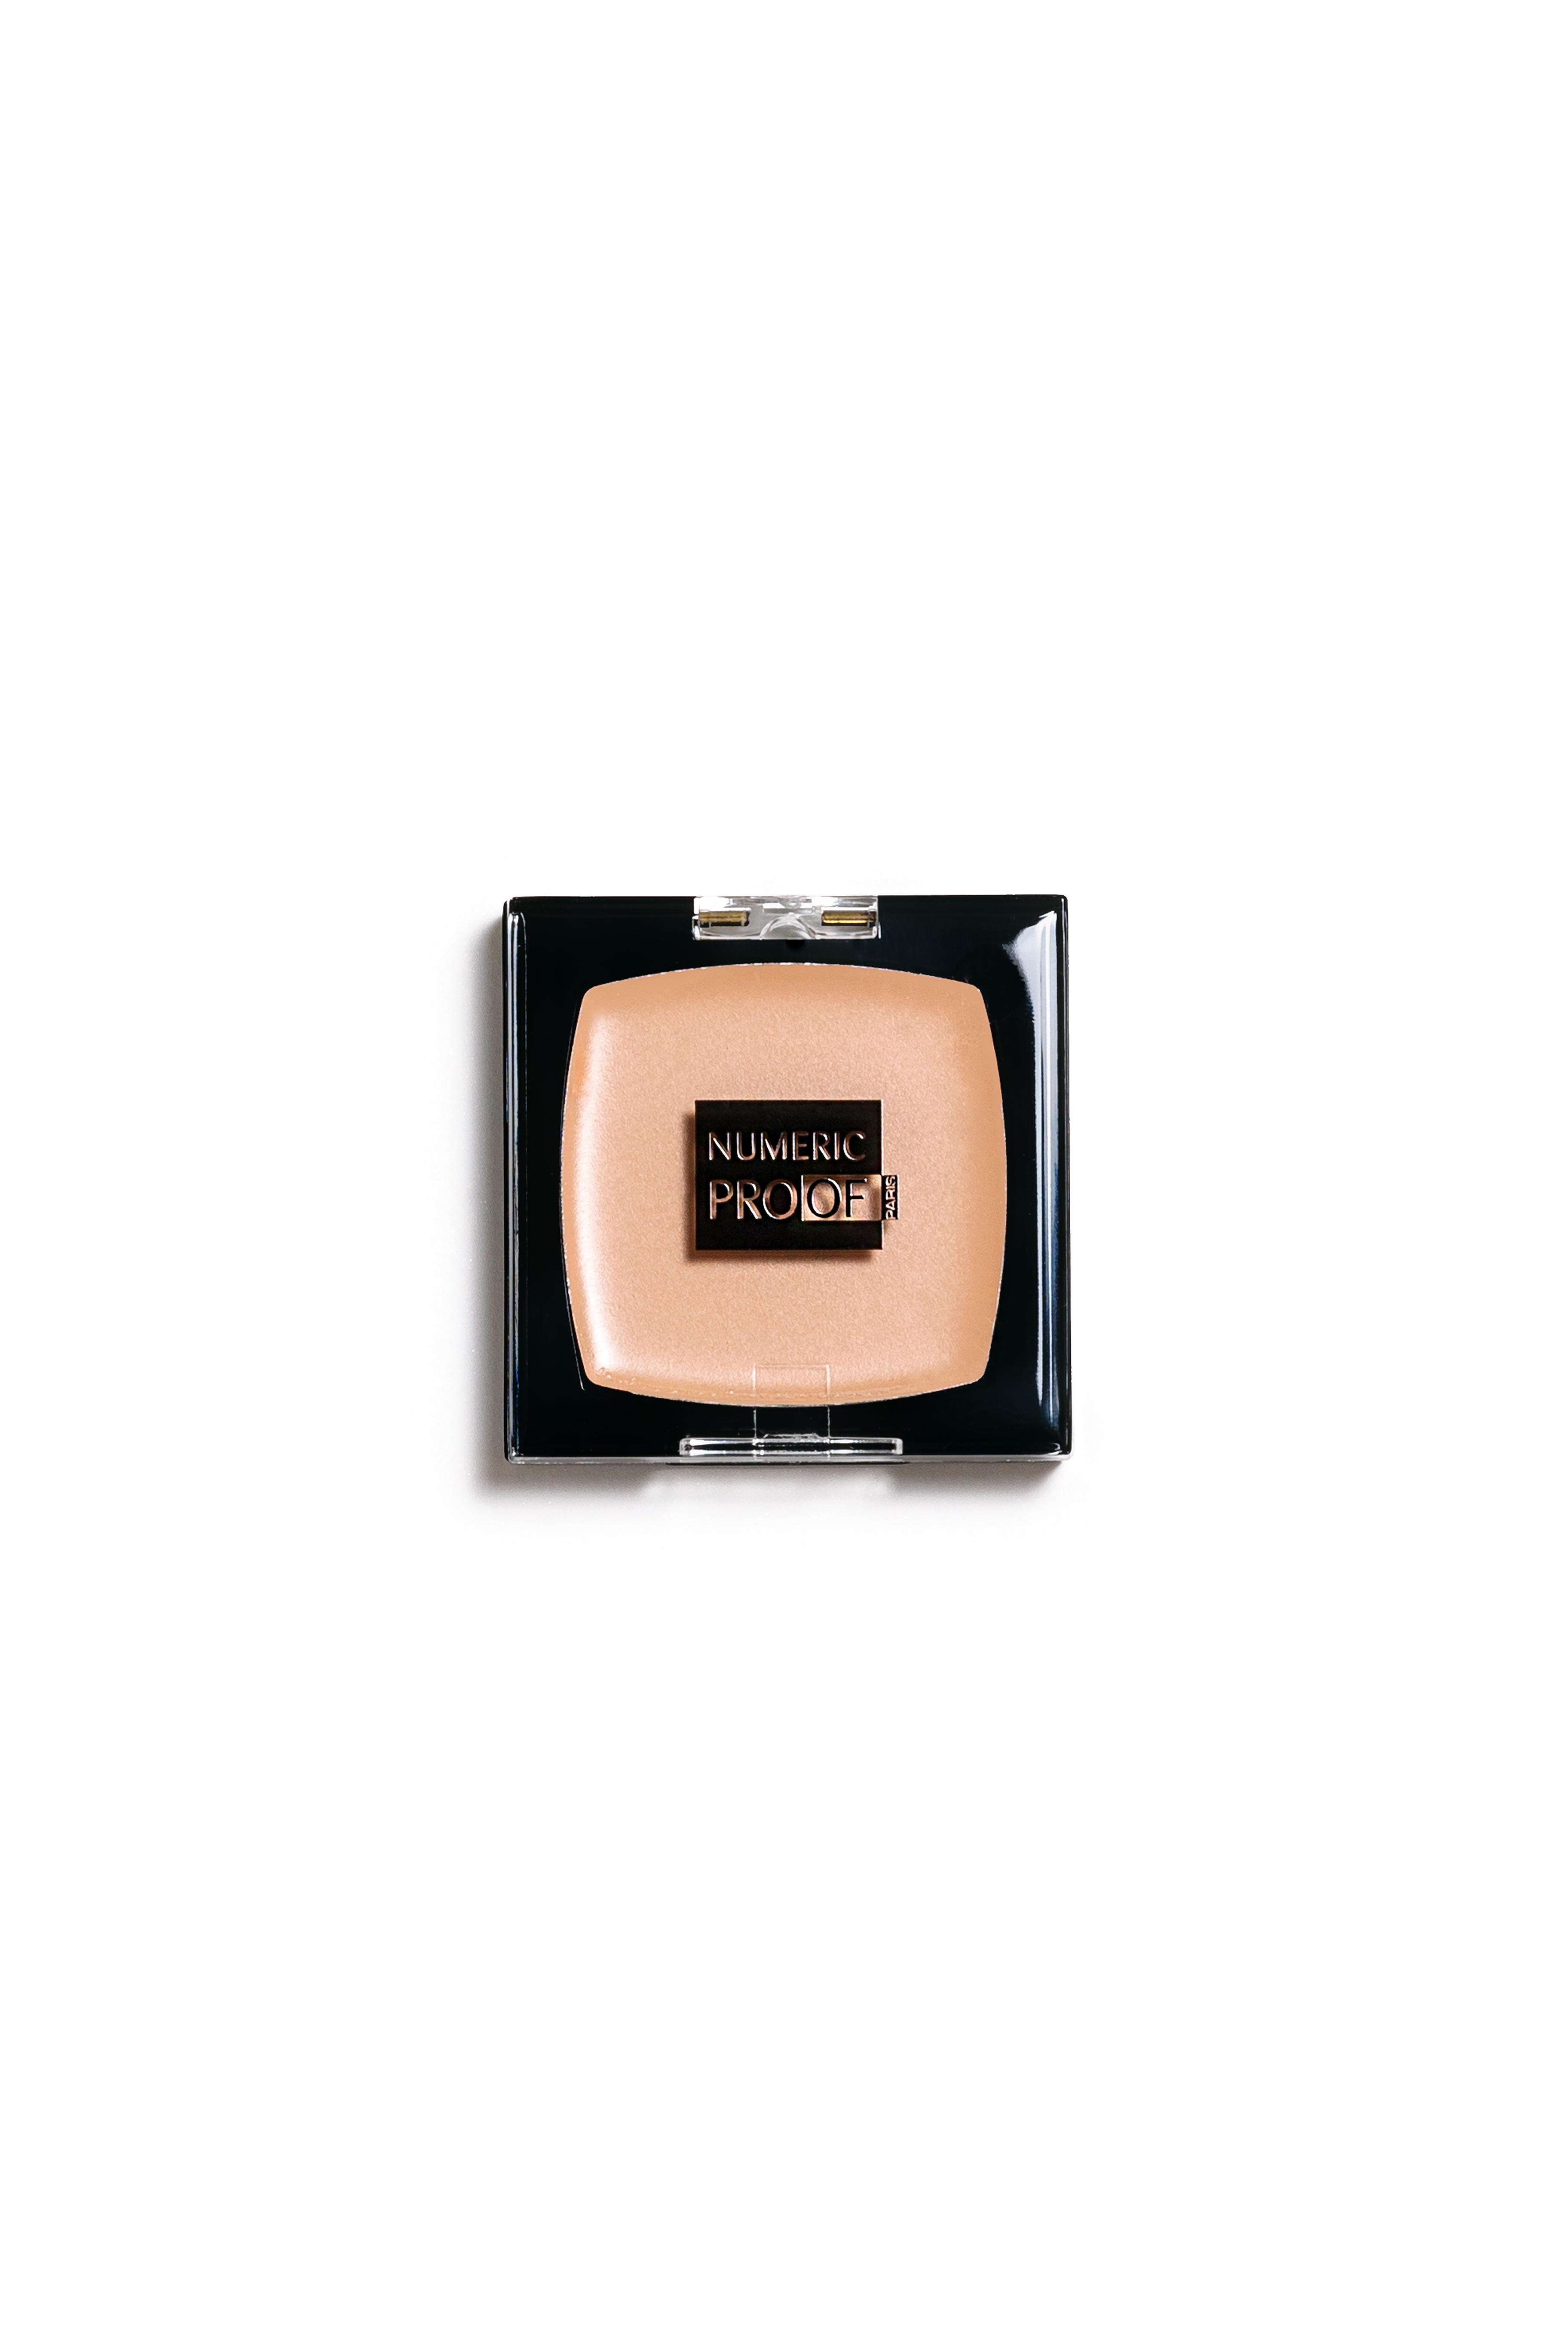 cosmetiques-numeric-proof-08